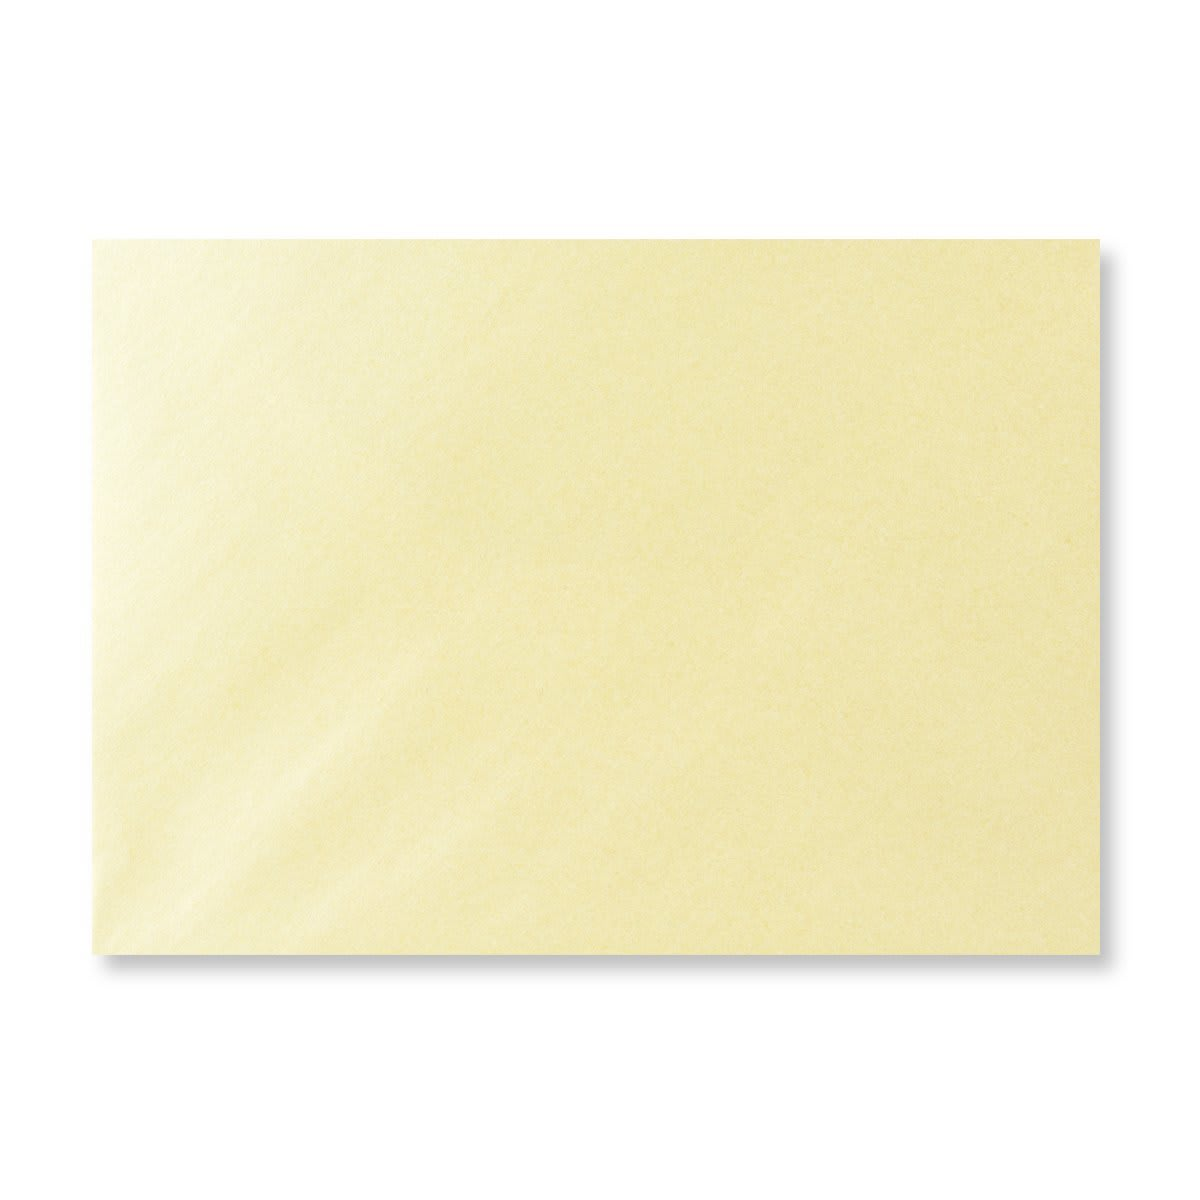 PEARLESCENT CHAMPAGNE 125 x 175 mm ENVELOPES (i6)